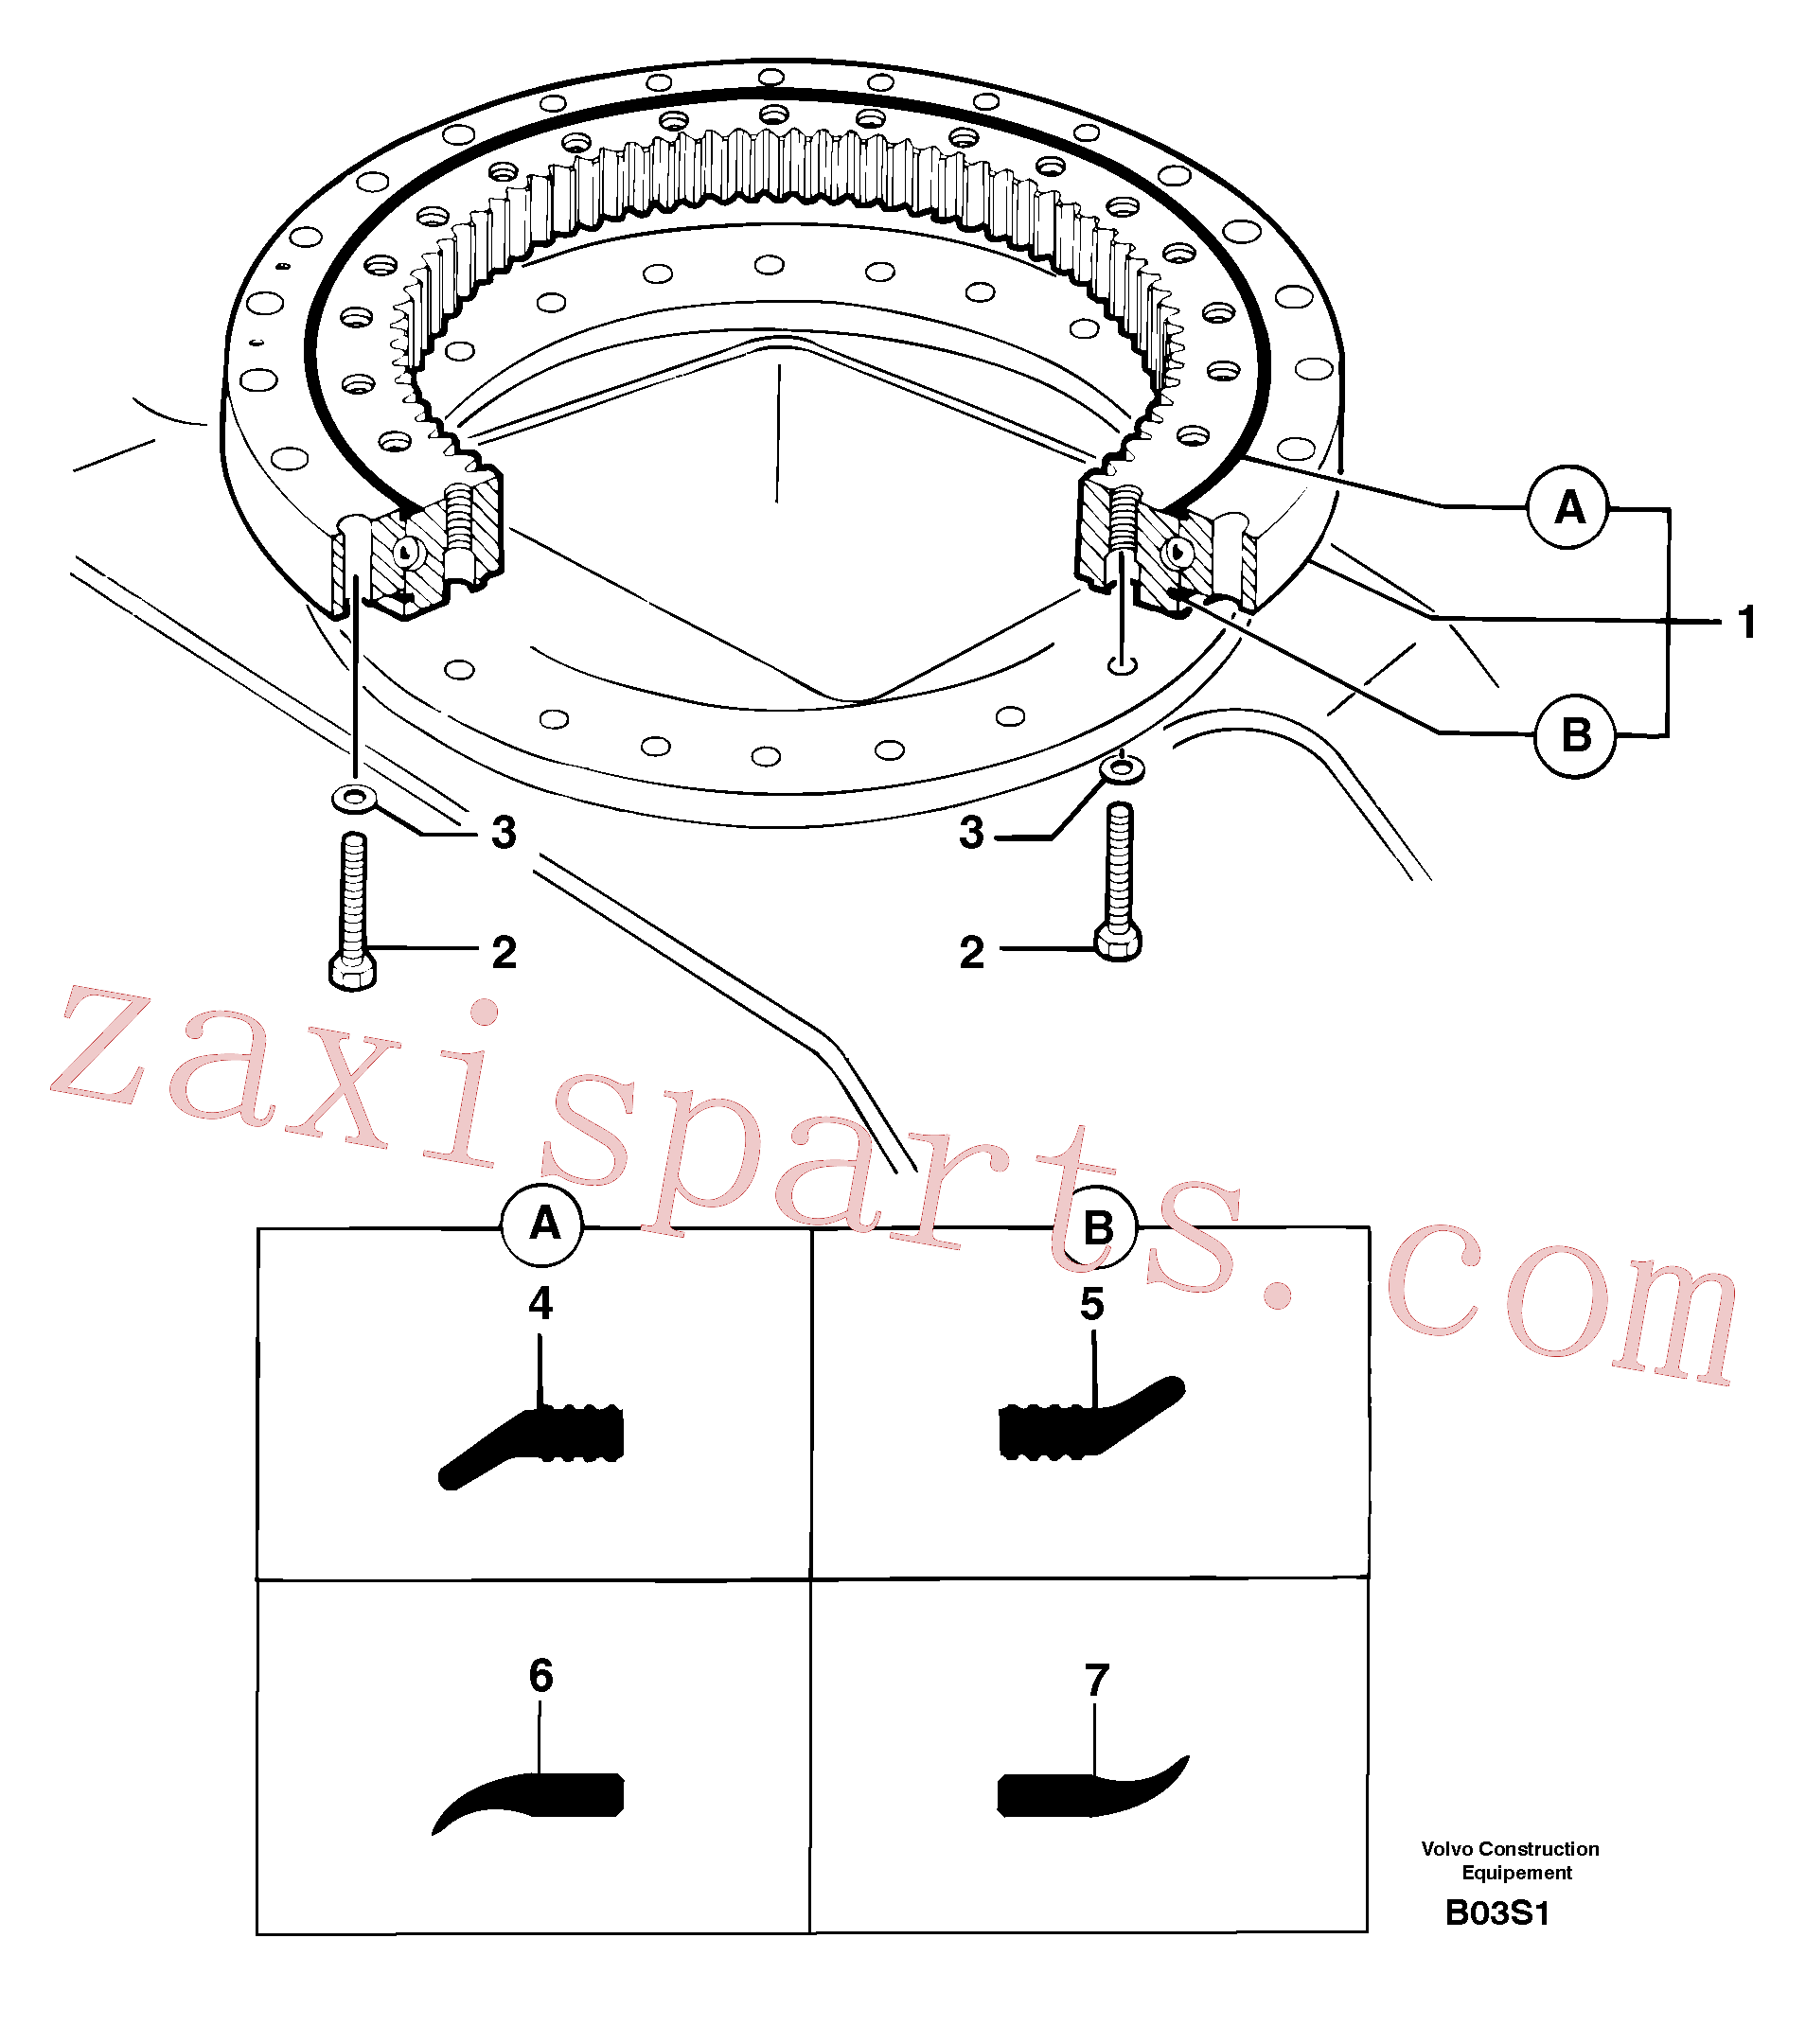 PJ7410003 for Volvo Slewing ring(B03S1 assembly)